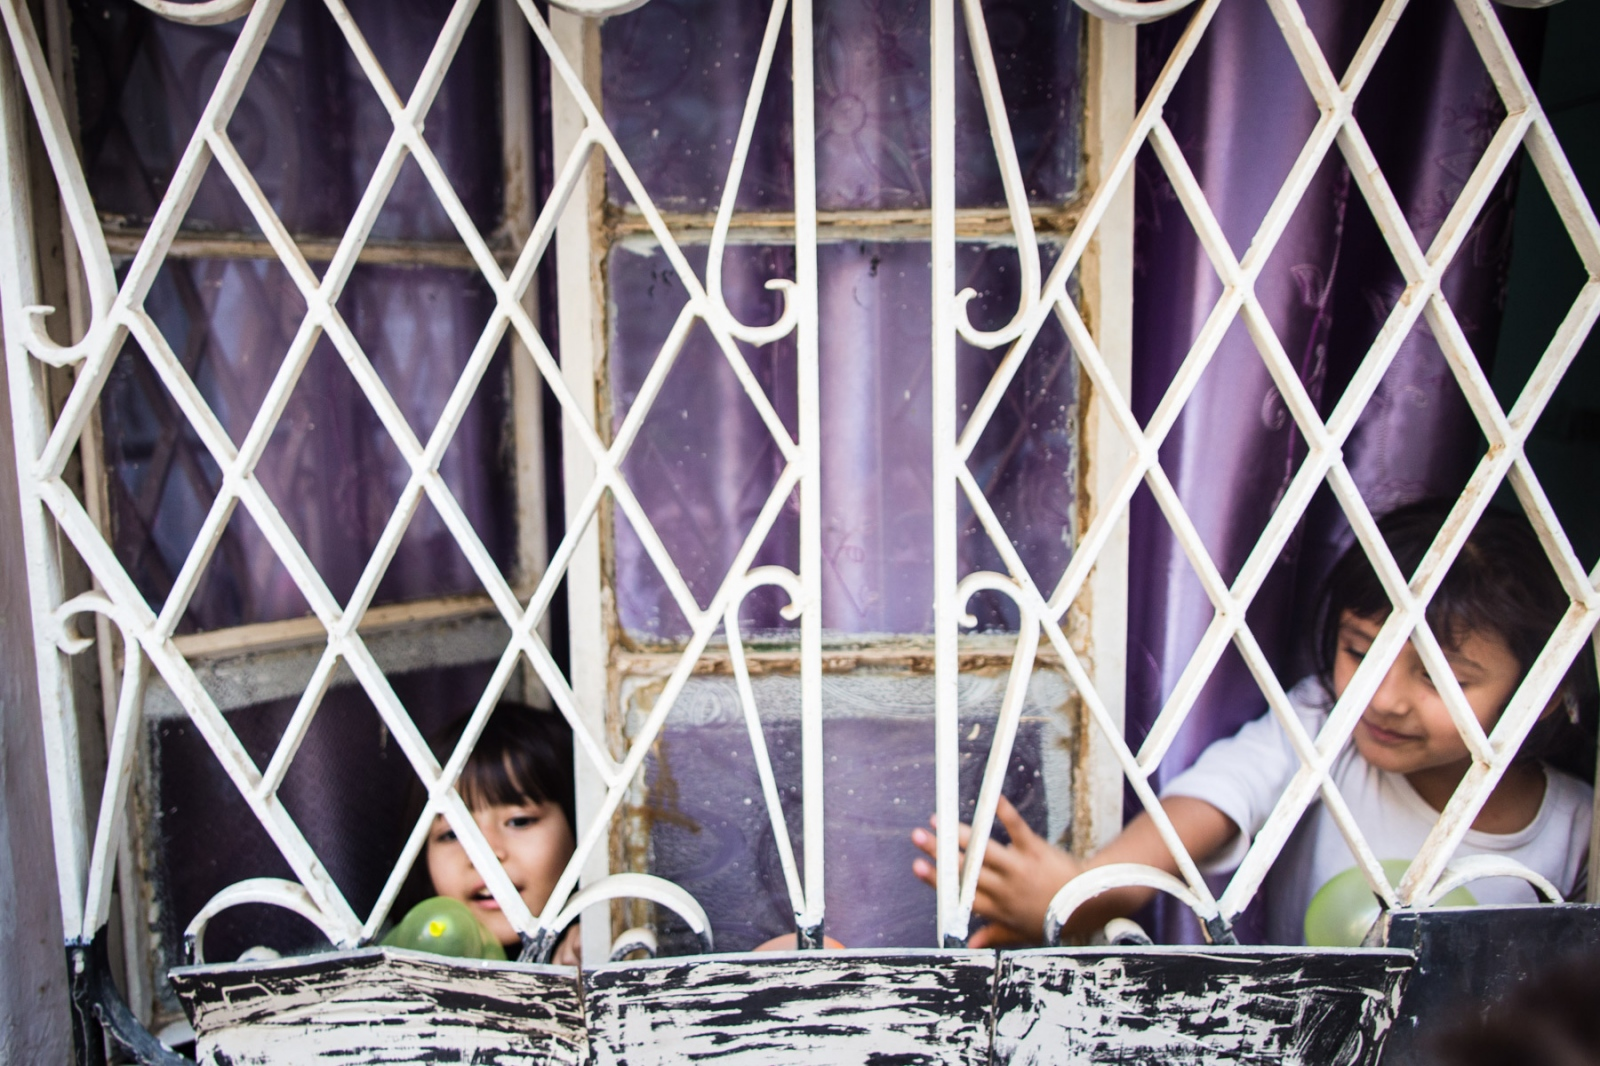 Two young Iraqi girls play with balloons in the window of Collateral Repair Project's community center in the Hashemi Shmali neighborhood of Amman, Jordan. The center provides educational activities for children as well as vocational training and language courses for adults.